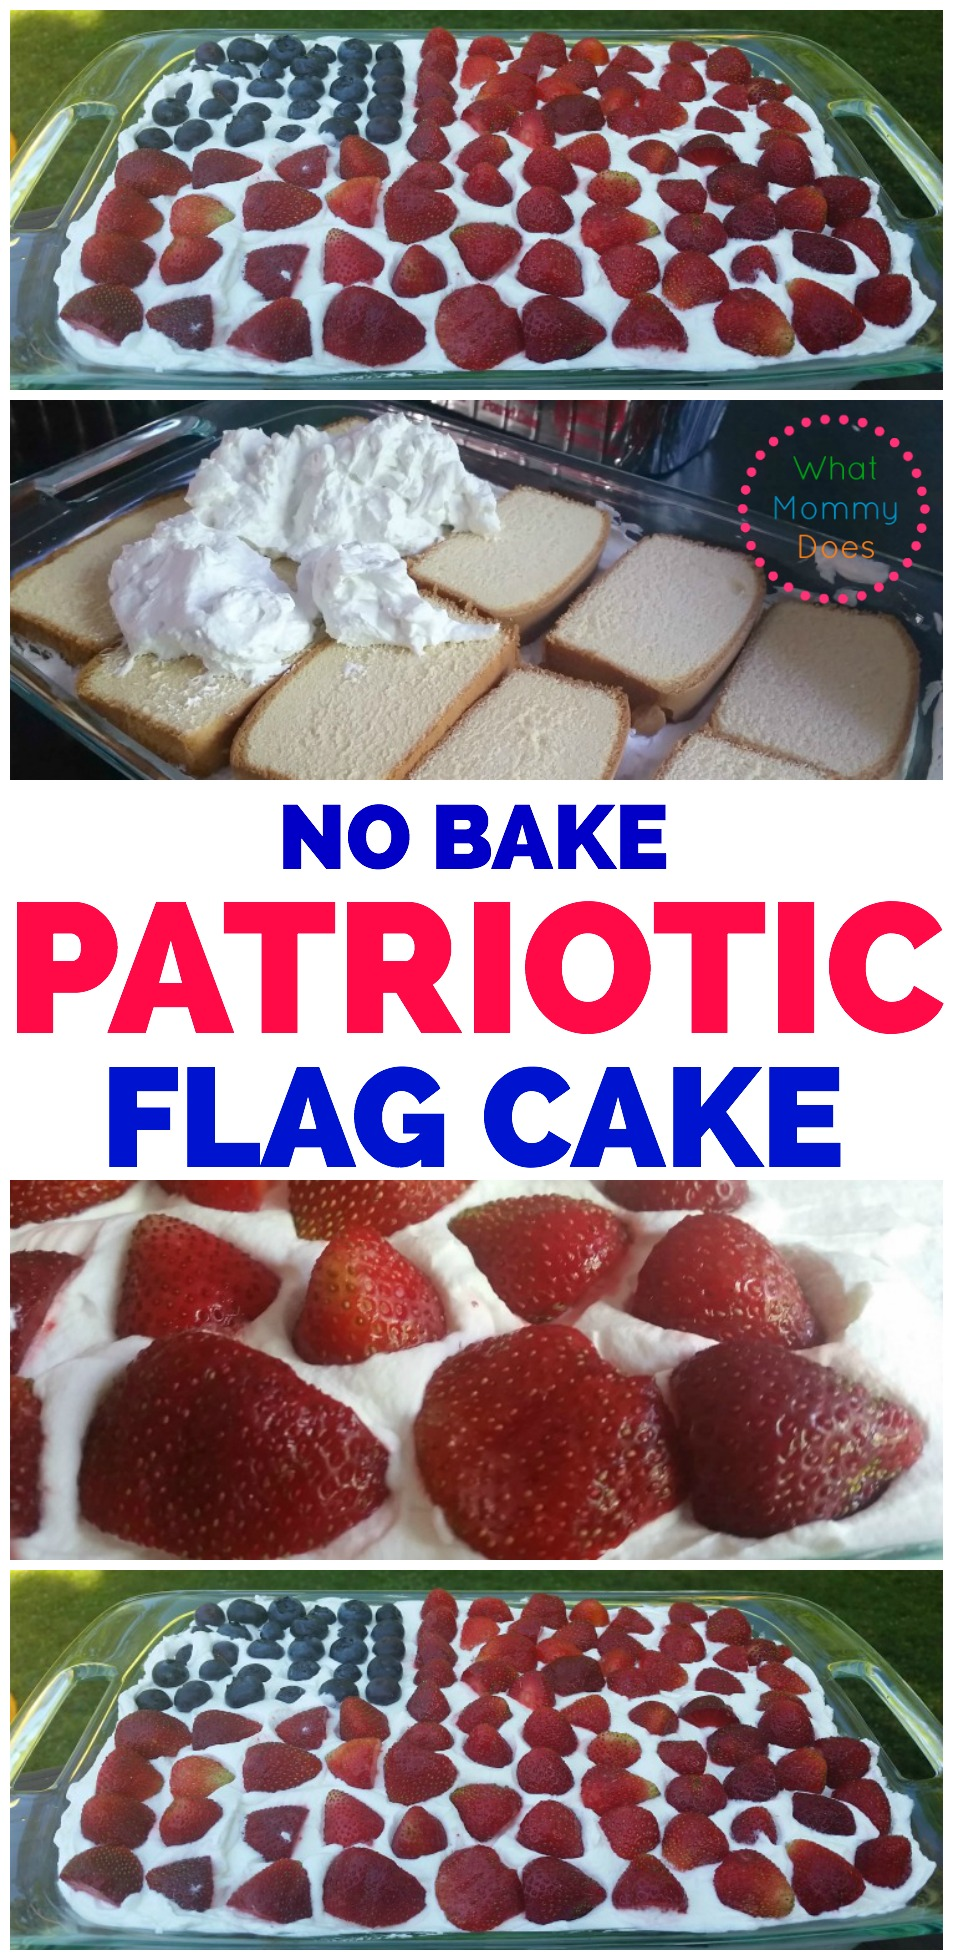 Easy No Bake Patriotic Flag Cake - Make this red, blue, and blue patriotic dessert for your Fourth of July activities. It's so simple and quick!!